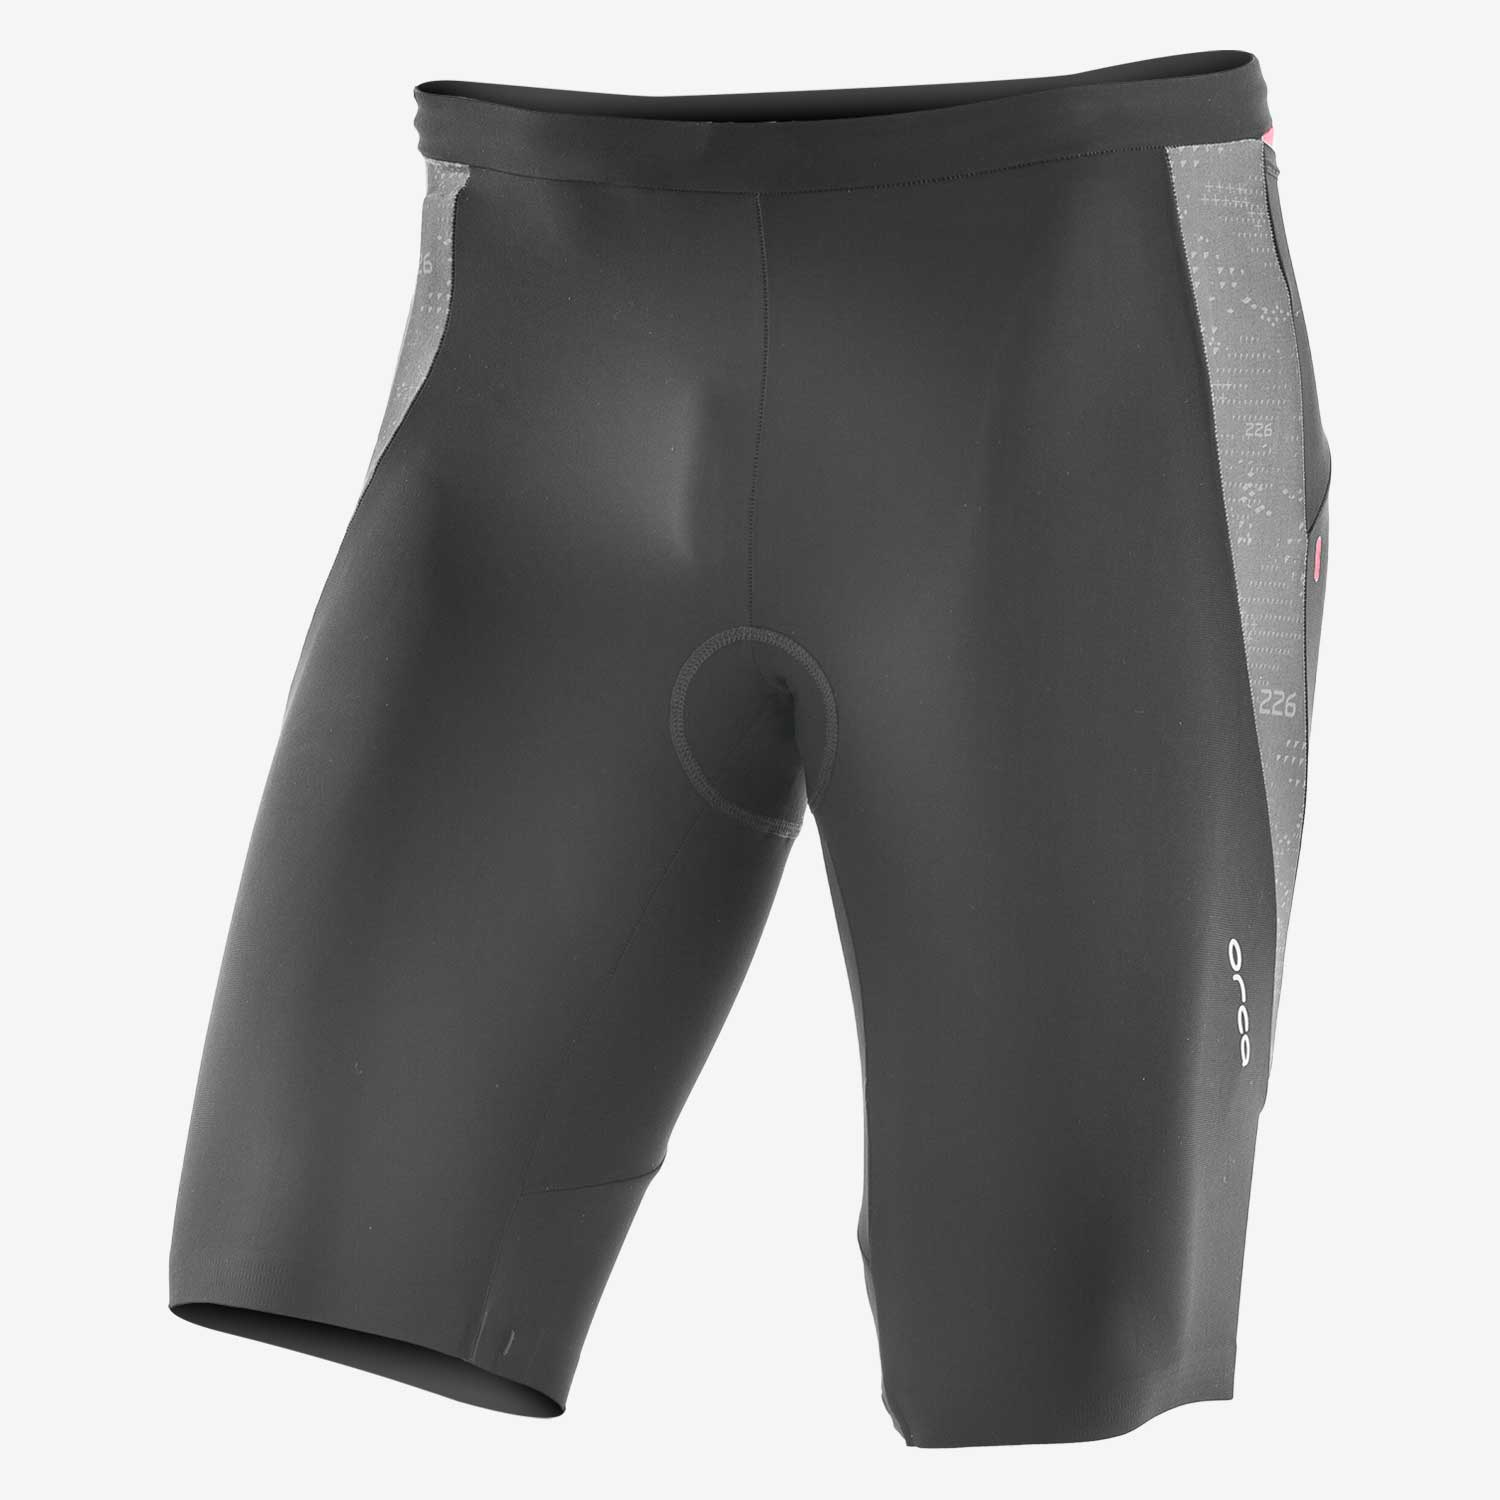 ORCA Men's 226 PERFORM Tri Tech Shorts